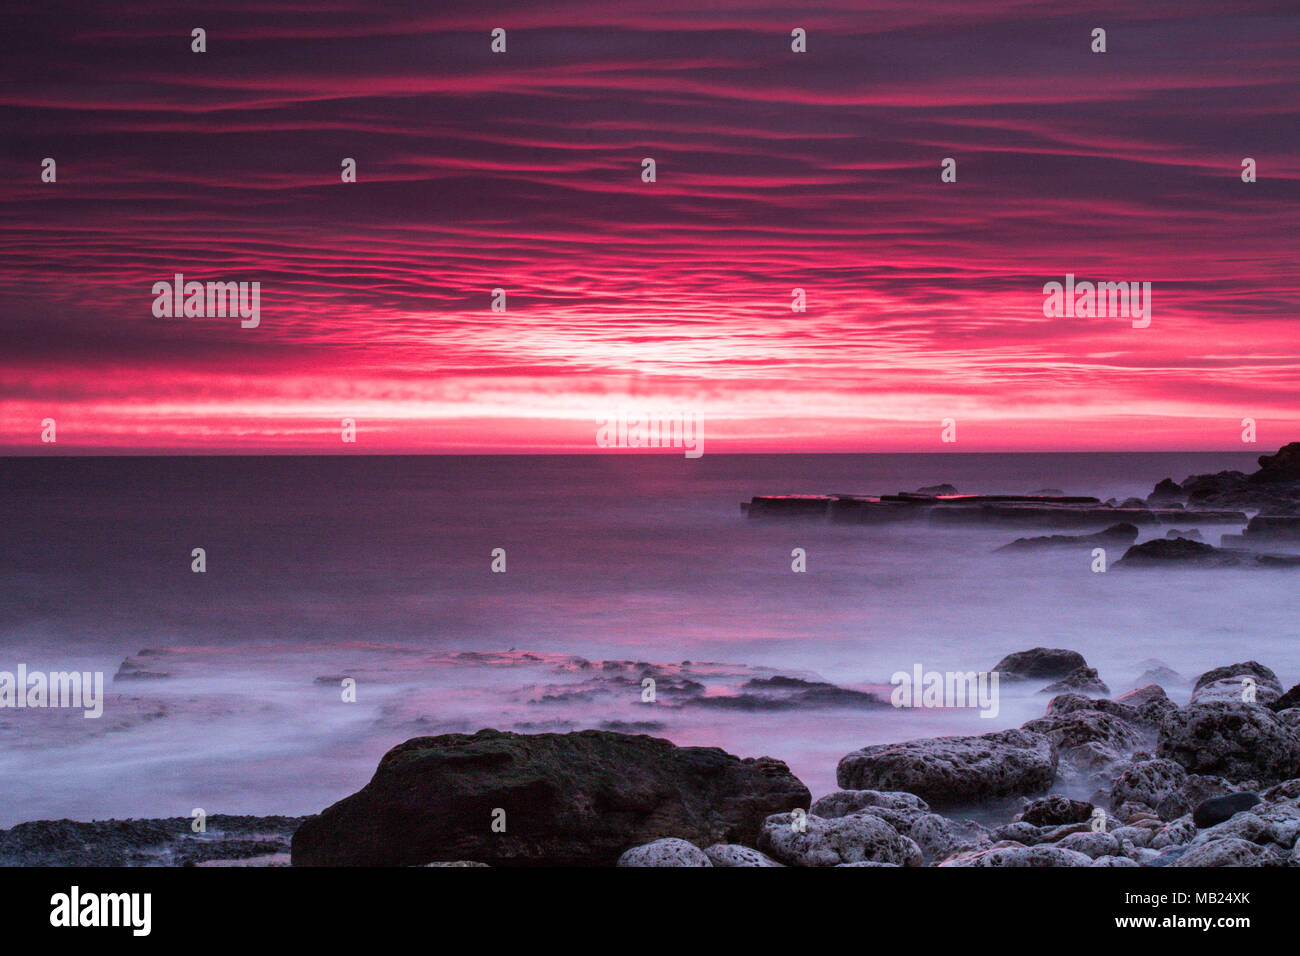 Trow Point, UK. 6th April, 2018. The sun rises on a Cloudy morning looking out over the North Sea.   Credit: Dan Cooke/Alamy Live News - Stock Image